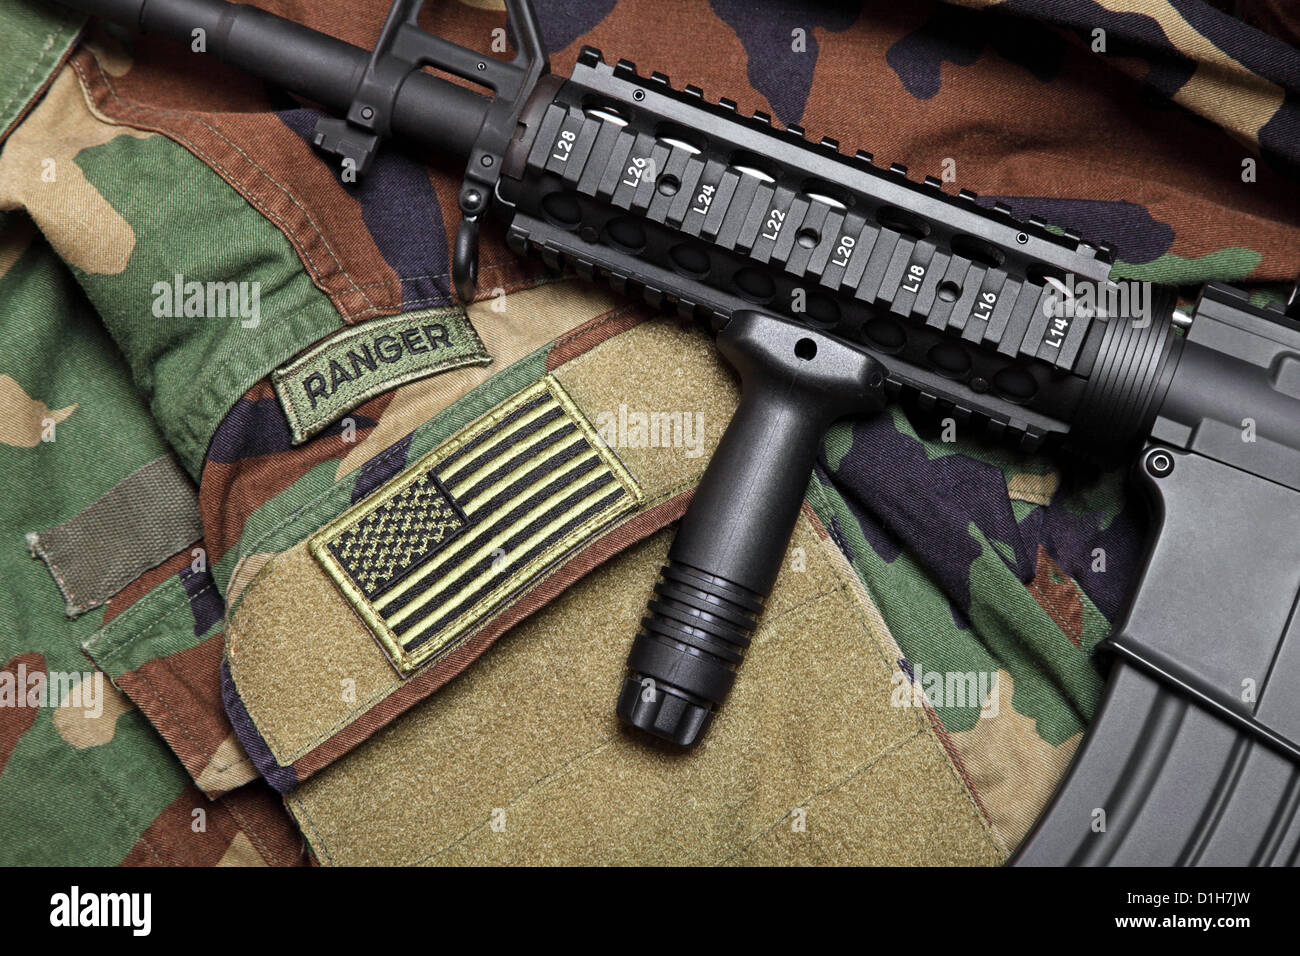 U.S. Army Ranger Woodland Camo BDU With The Tactical Carbine On It. - Stock Image